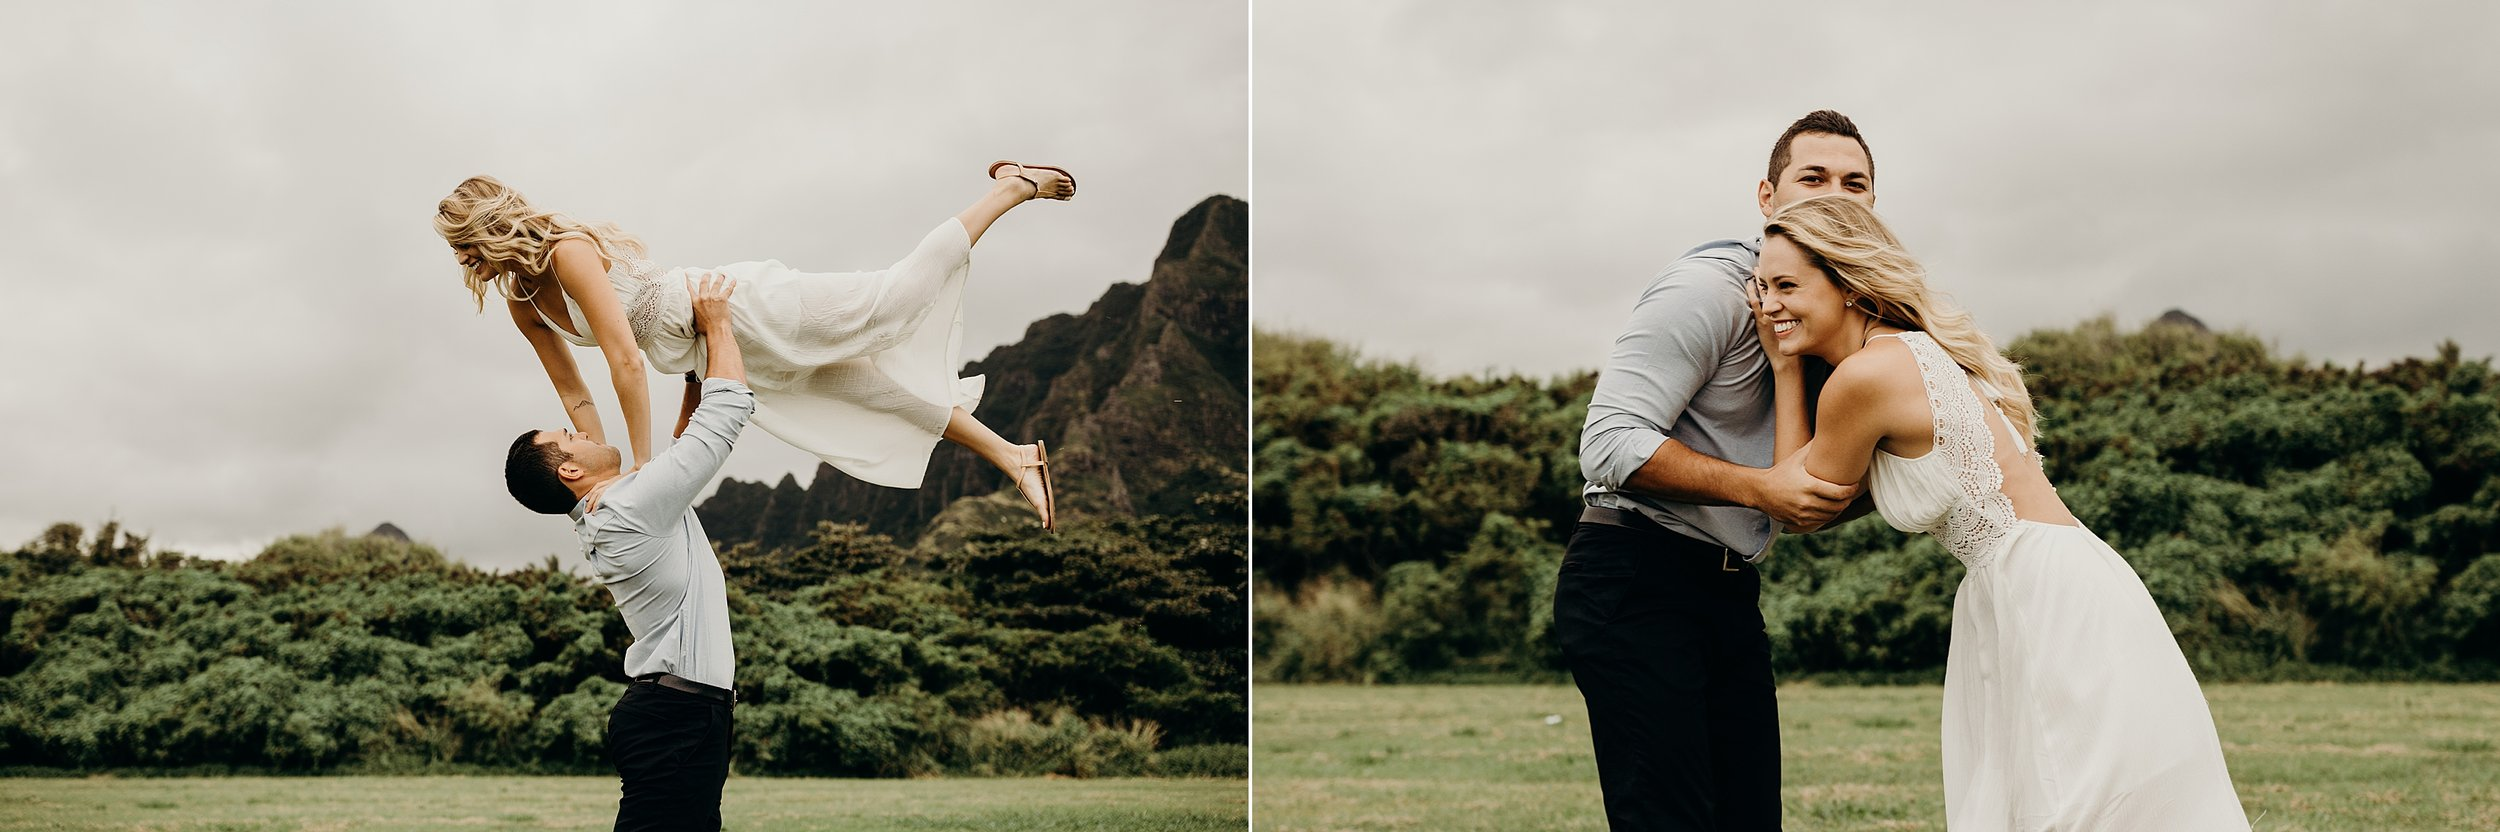 hawaii-engagement-photographer-keani-bakula-kualoa-ranch_0001.jpg